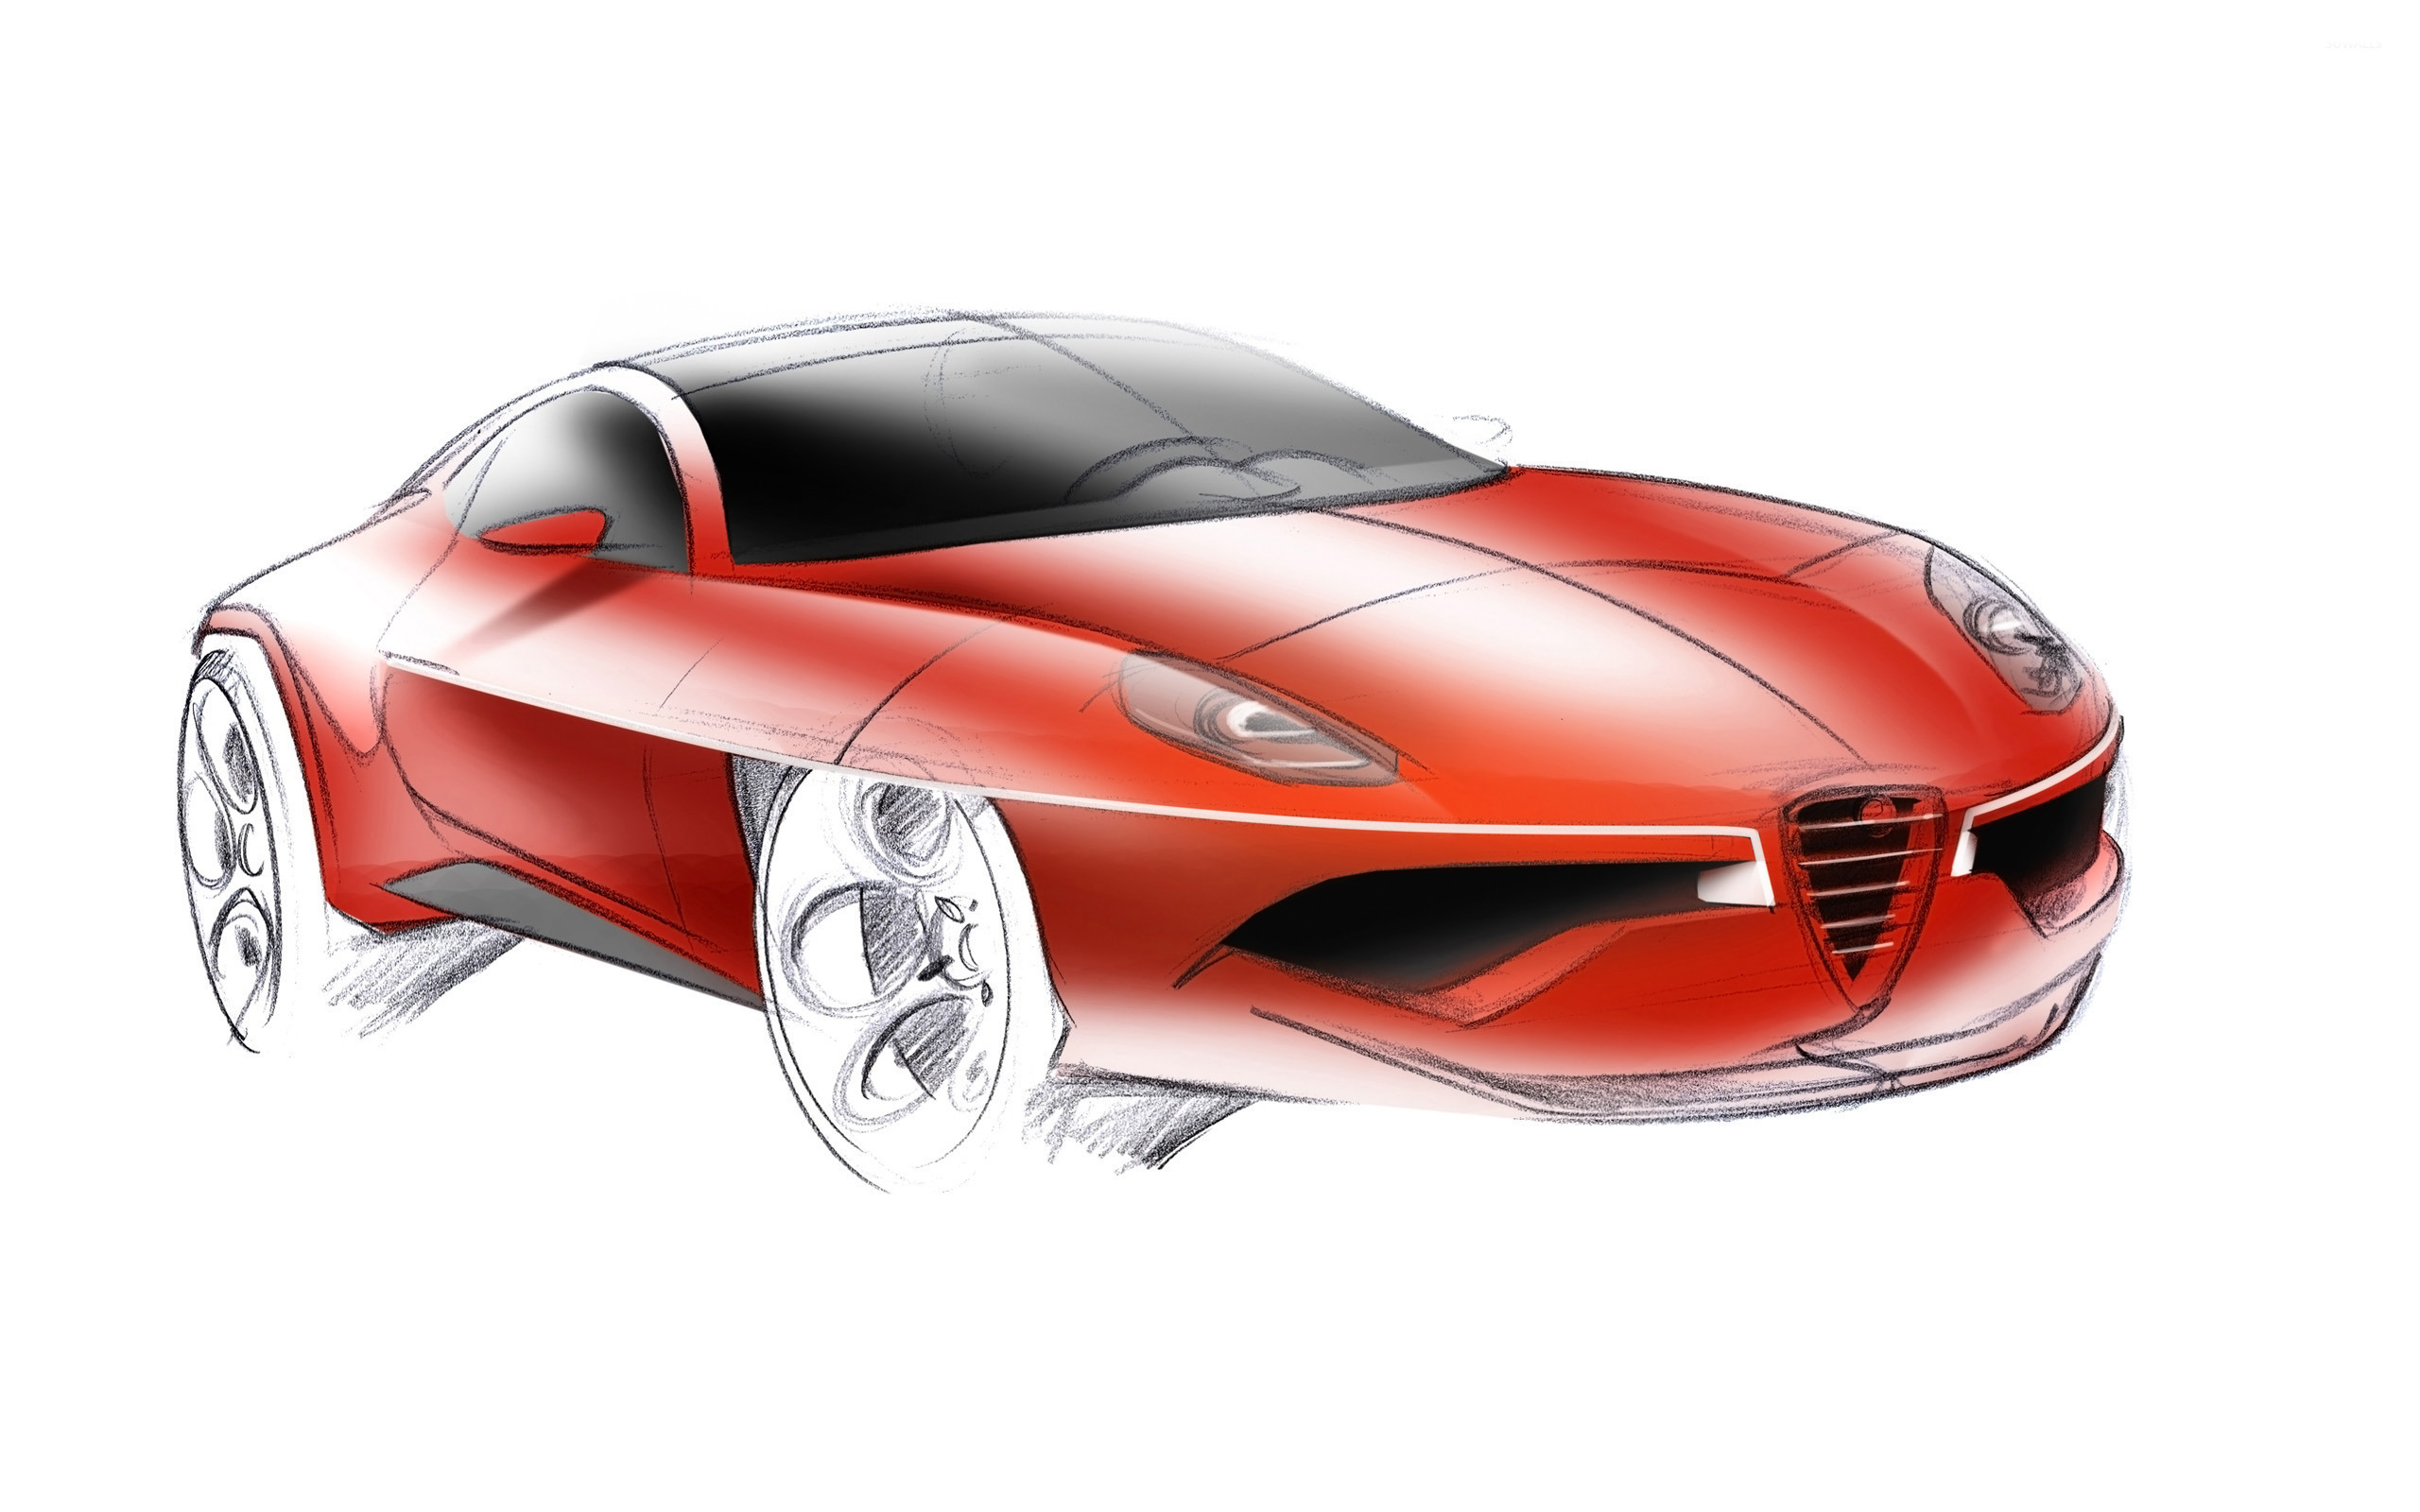 2012 Alfa Romeo Disco Volante [2] Wallpaper